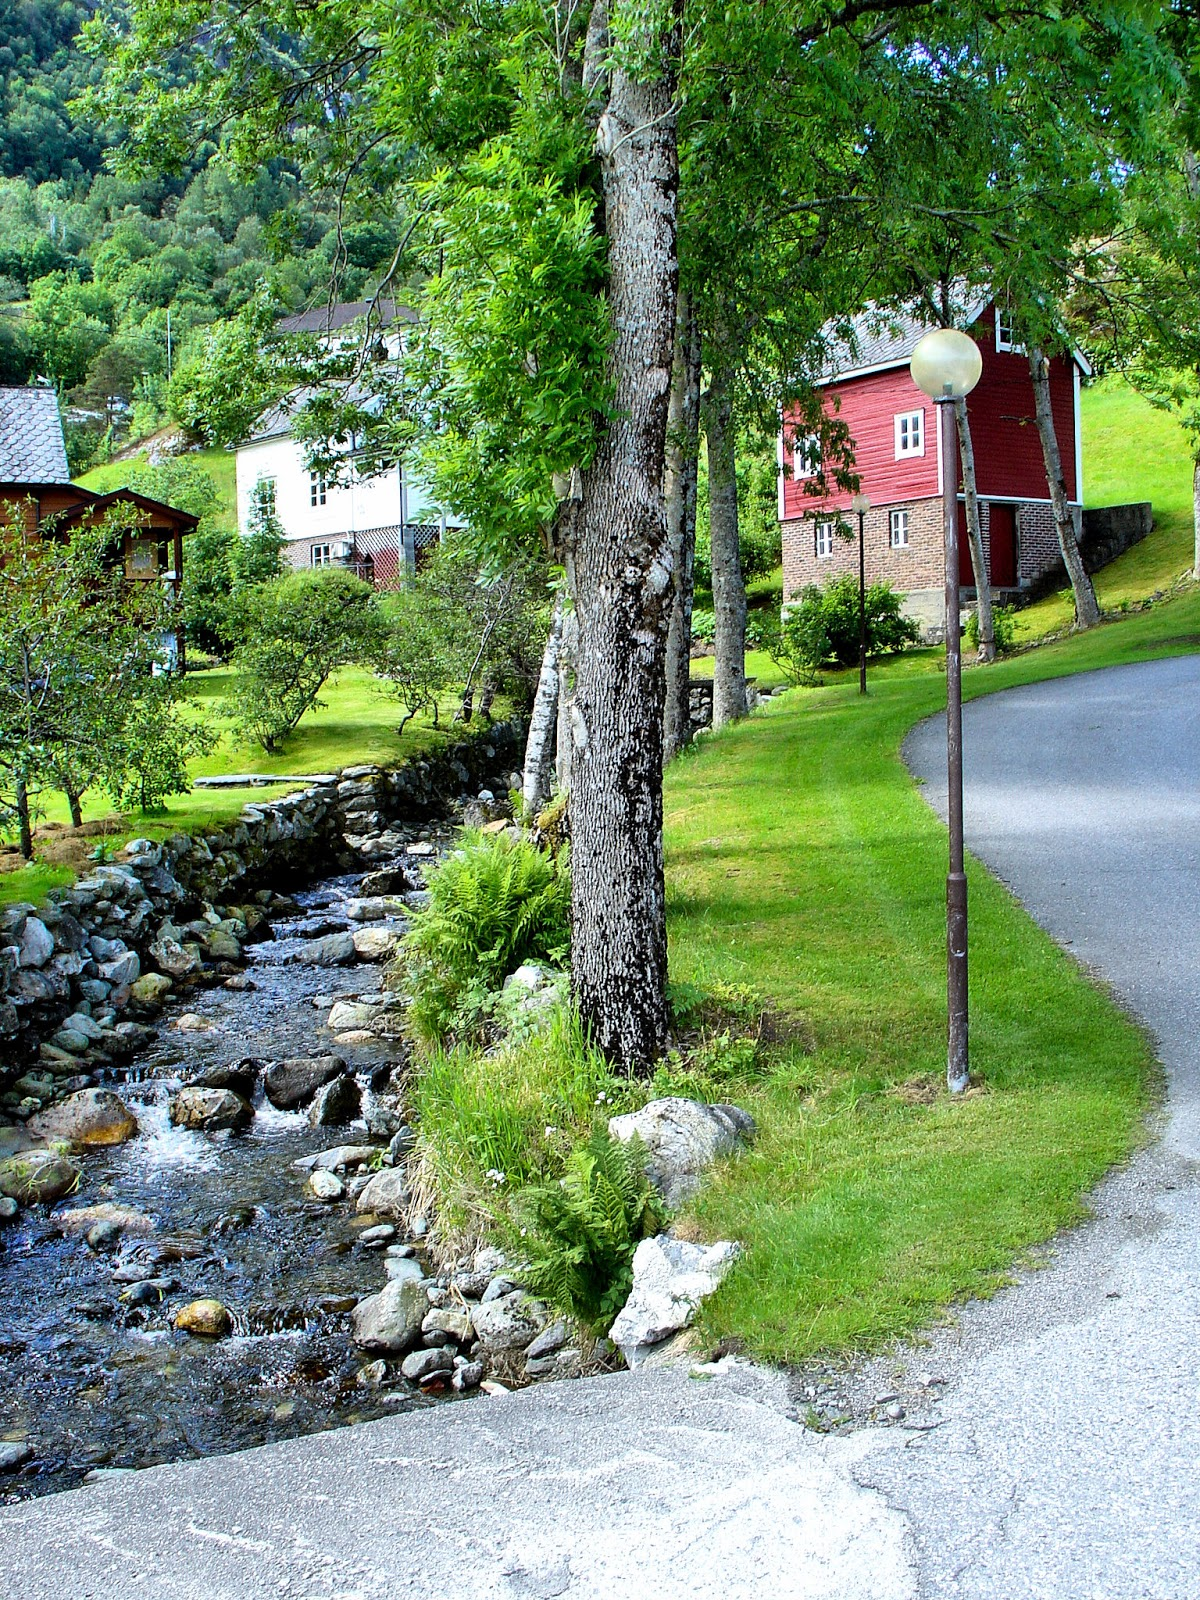 On the way to the Hardanger Folk Museum in Utne, Norway. Photo: EuroTravelogue™. Unauthorized use is prohibited.